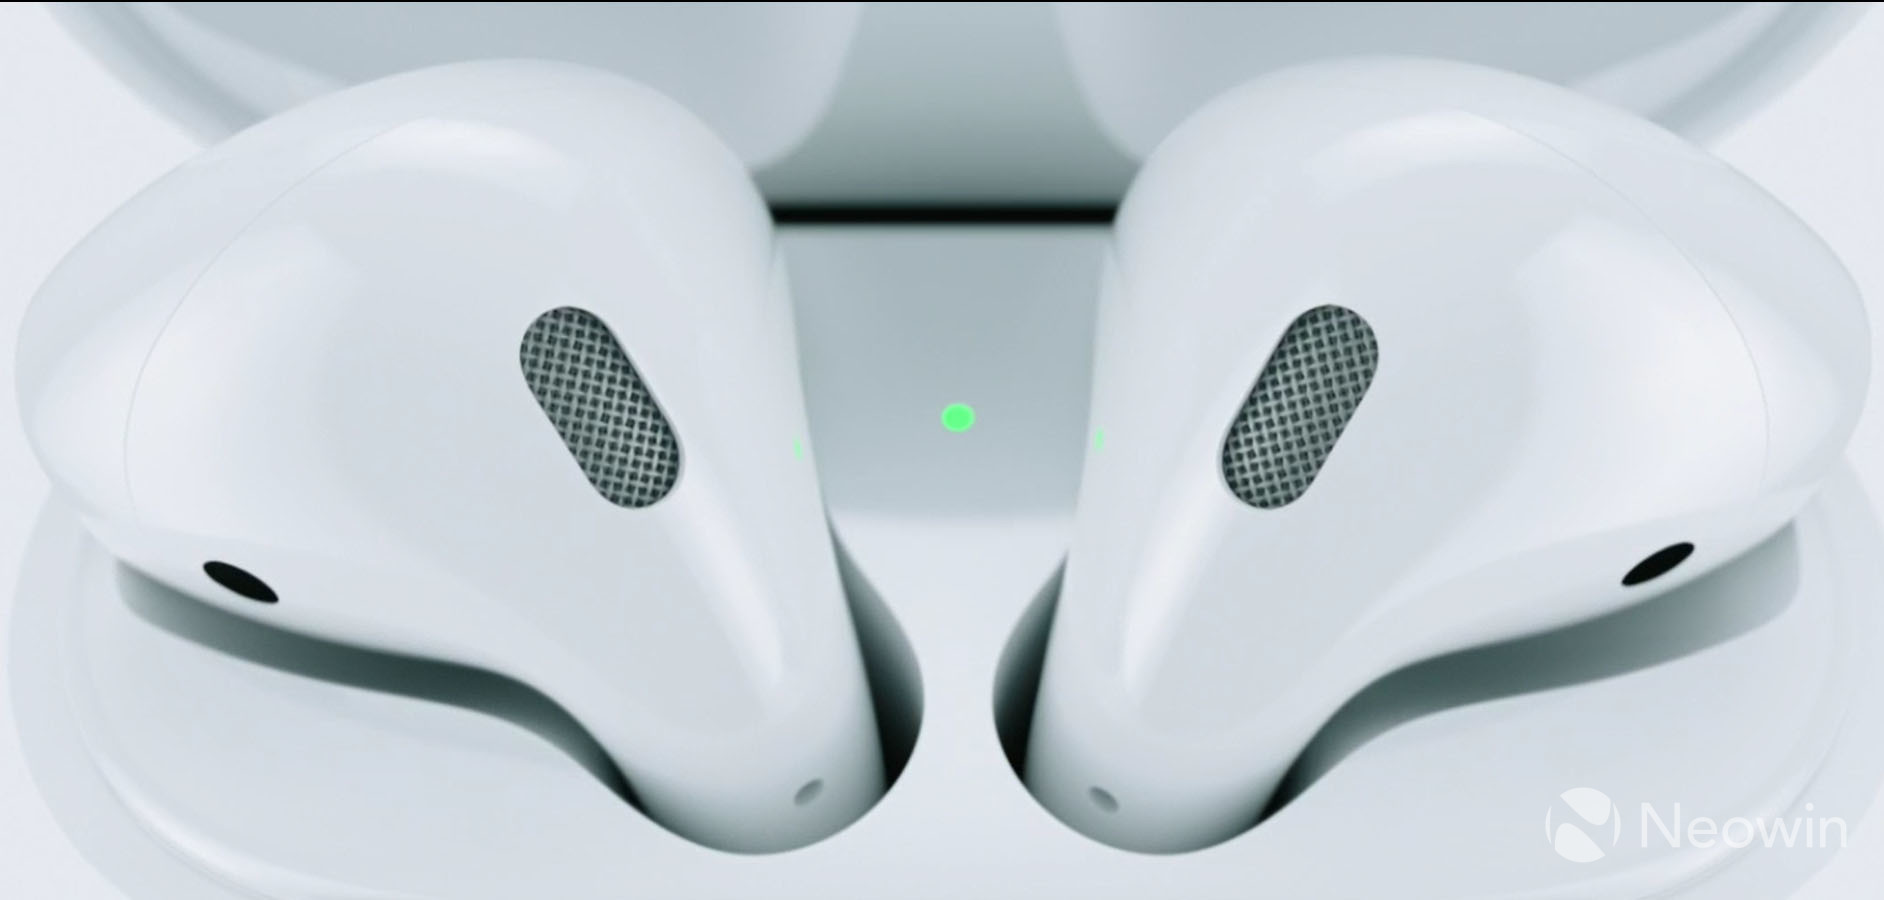 8dccff64af0 Repair and replacement details for Apple's AirPods announced - replacements  will be $69